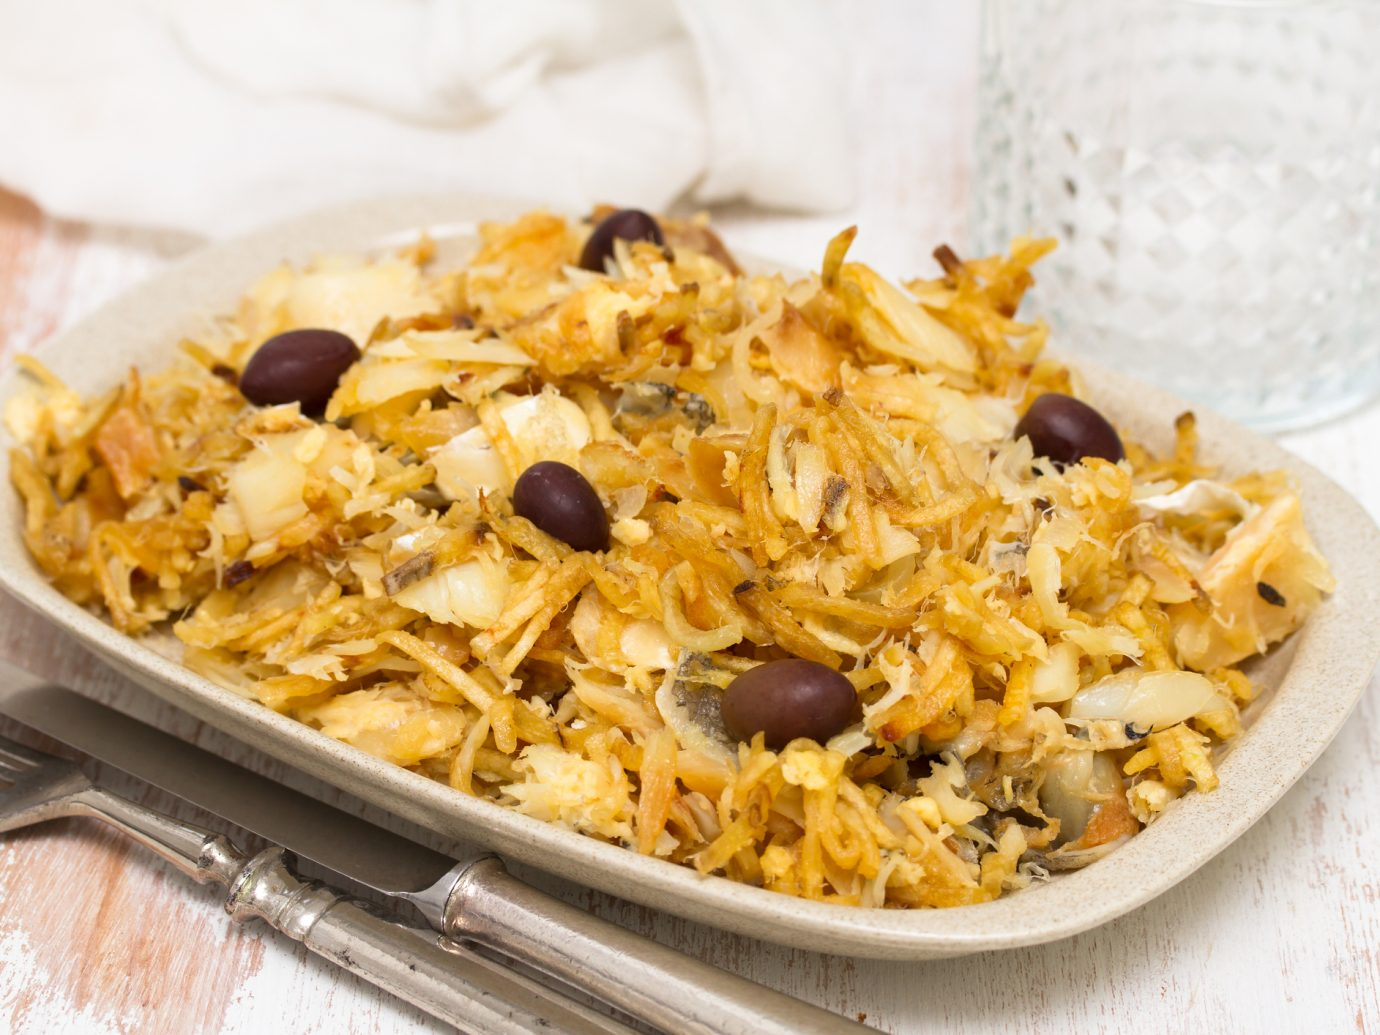 Bacalhau codfish with potato chips and olives on white plate